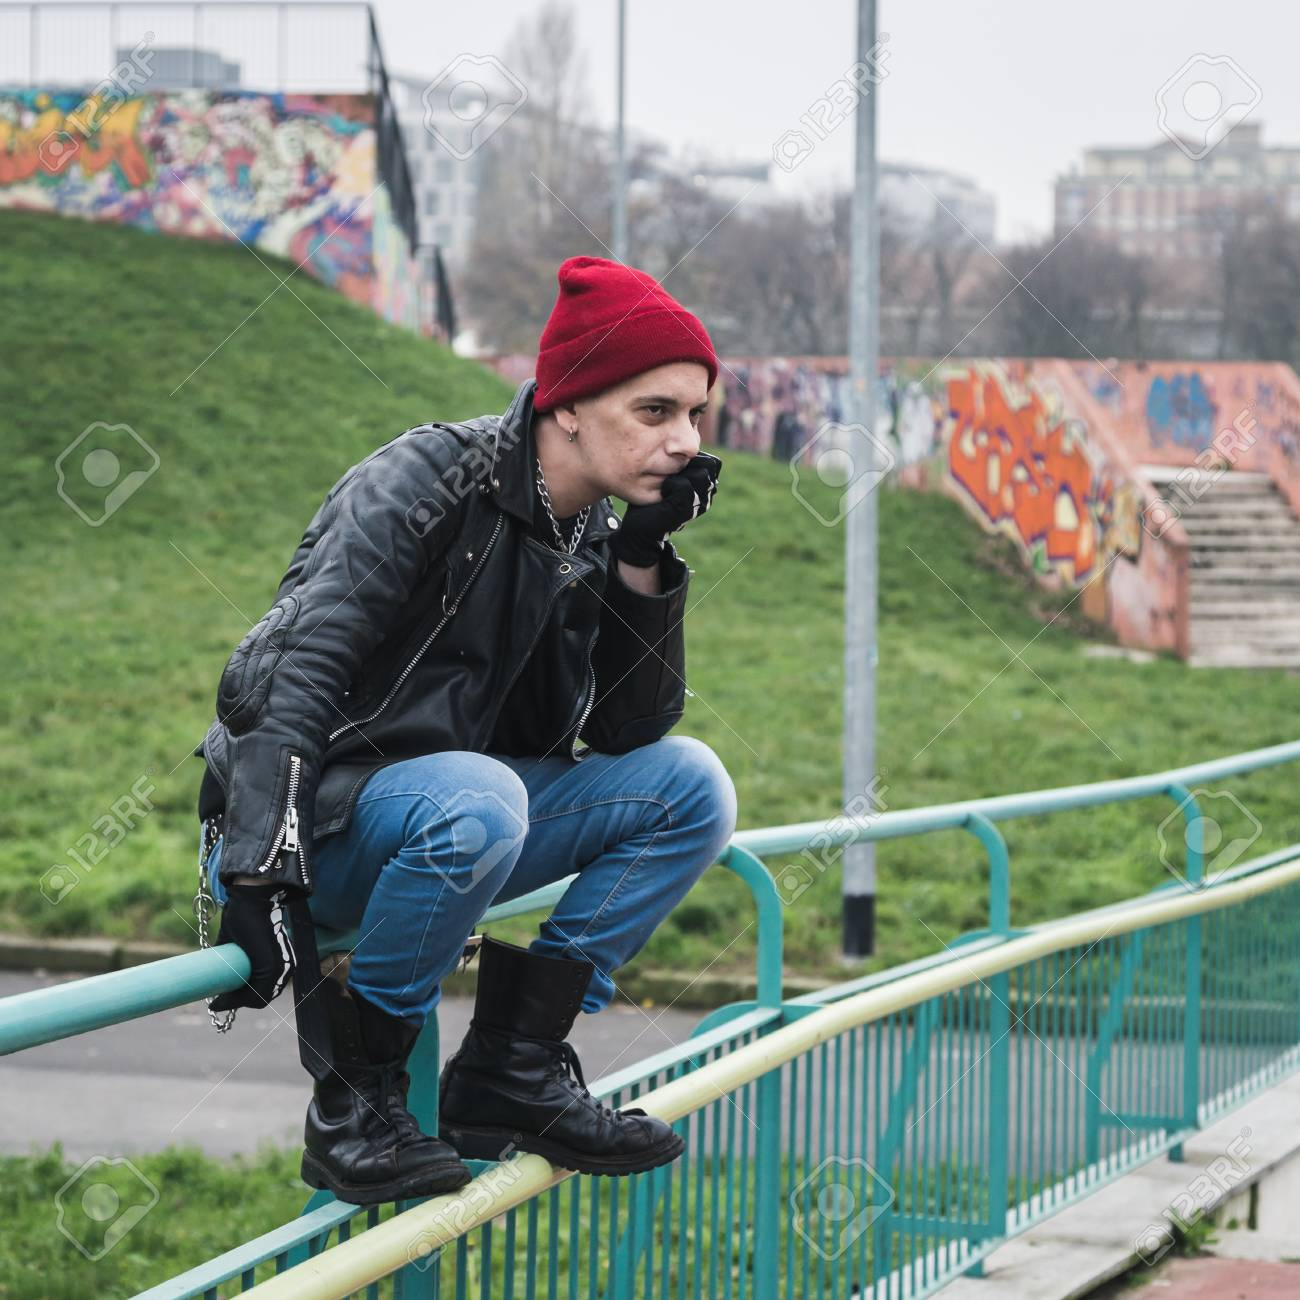 fe597aea5bf Punk guy with beanie posing in a city park Stock Photo - 36177664